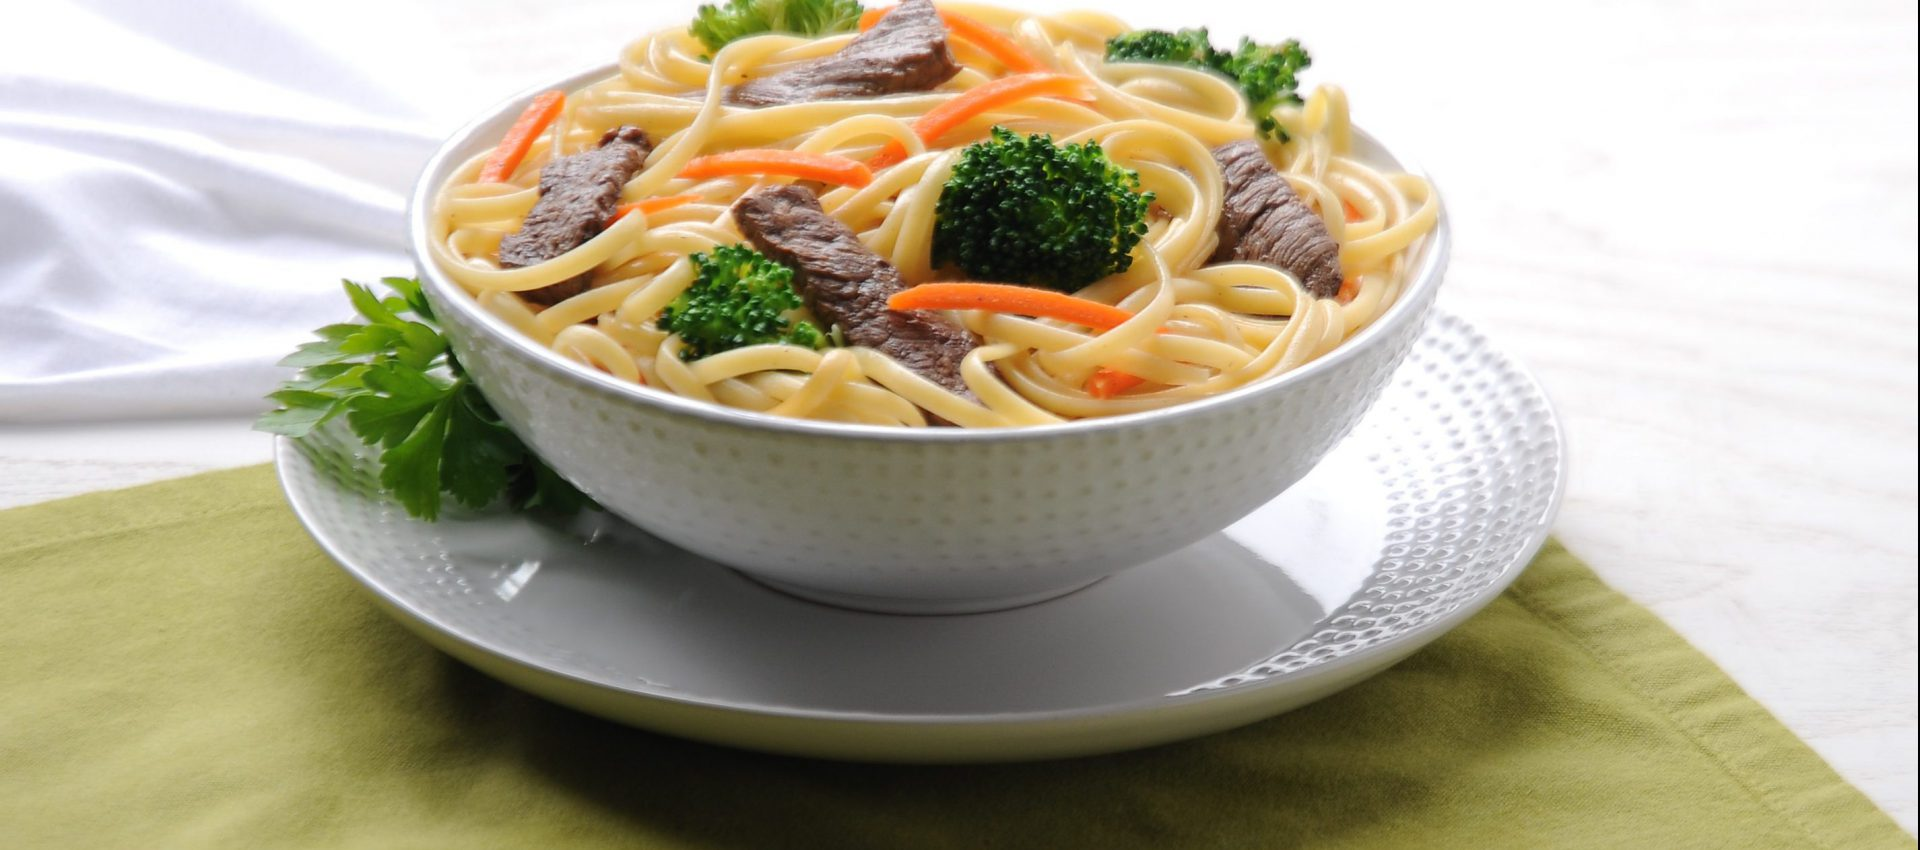 Asian-flavored-sirloin-stir-fry-e1482509861255-1920x850 Asian-flavored Sirloin Stir Fry